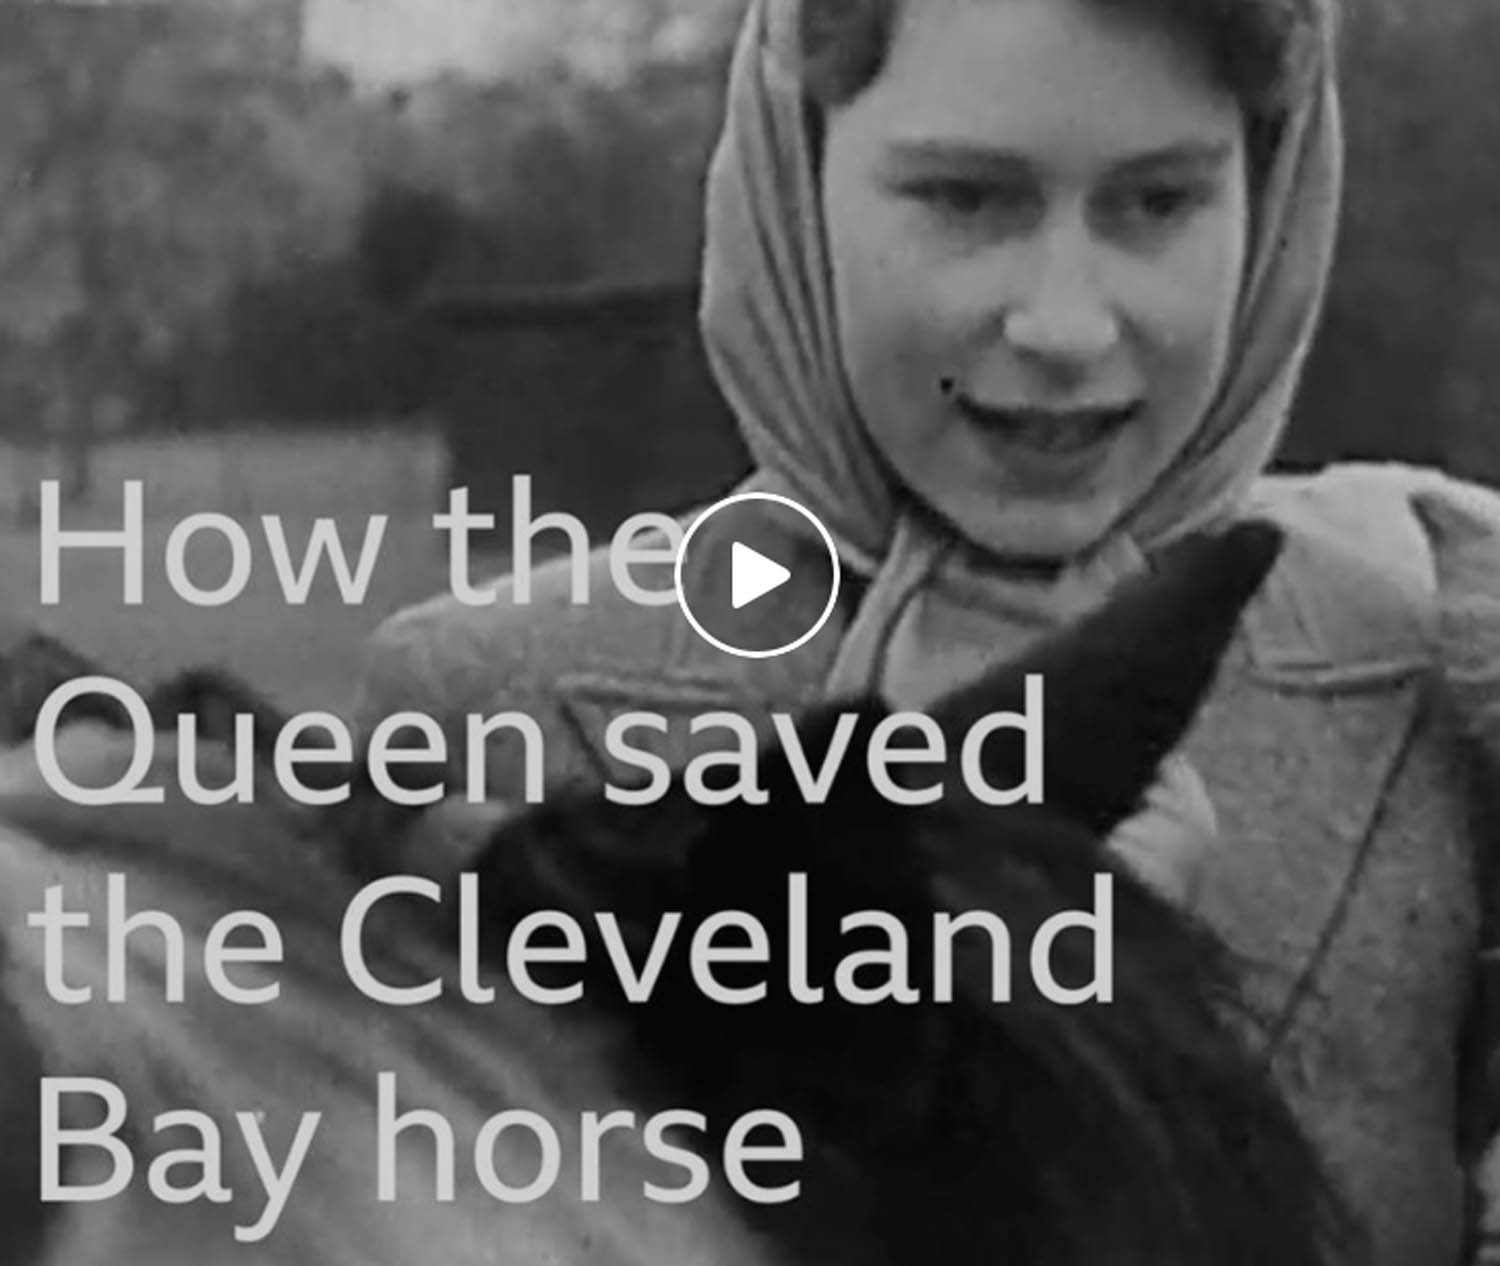 How the Queen saved the Cleveland Bay horse